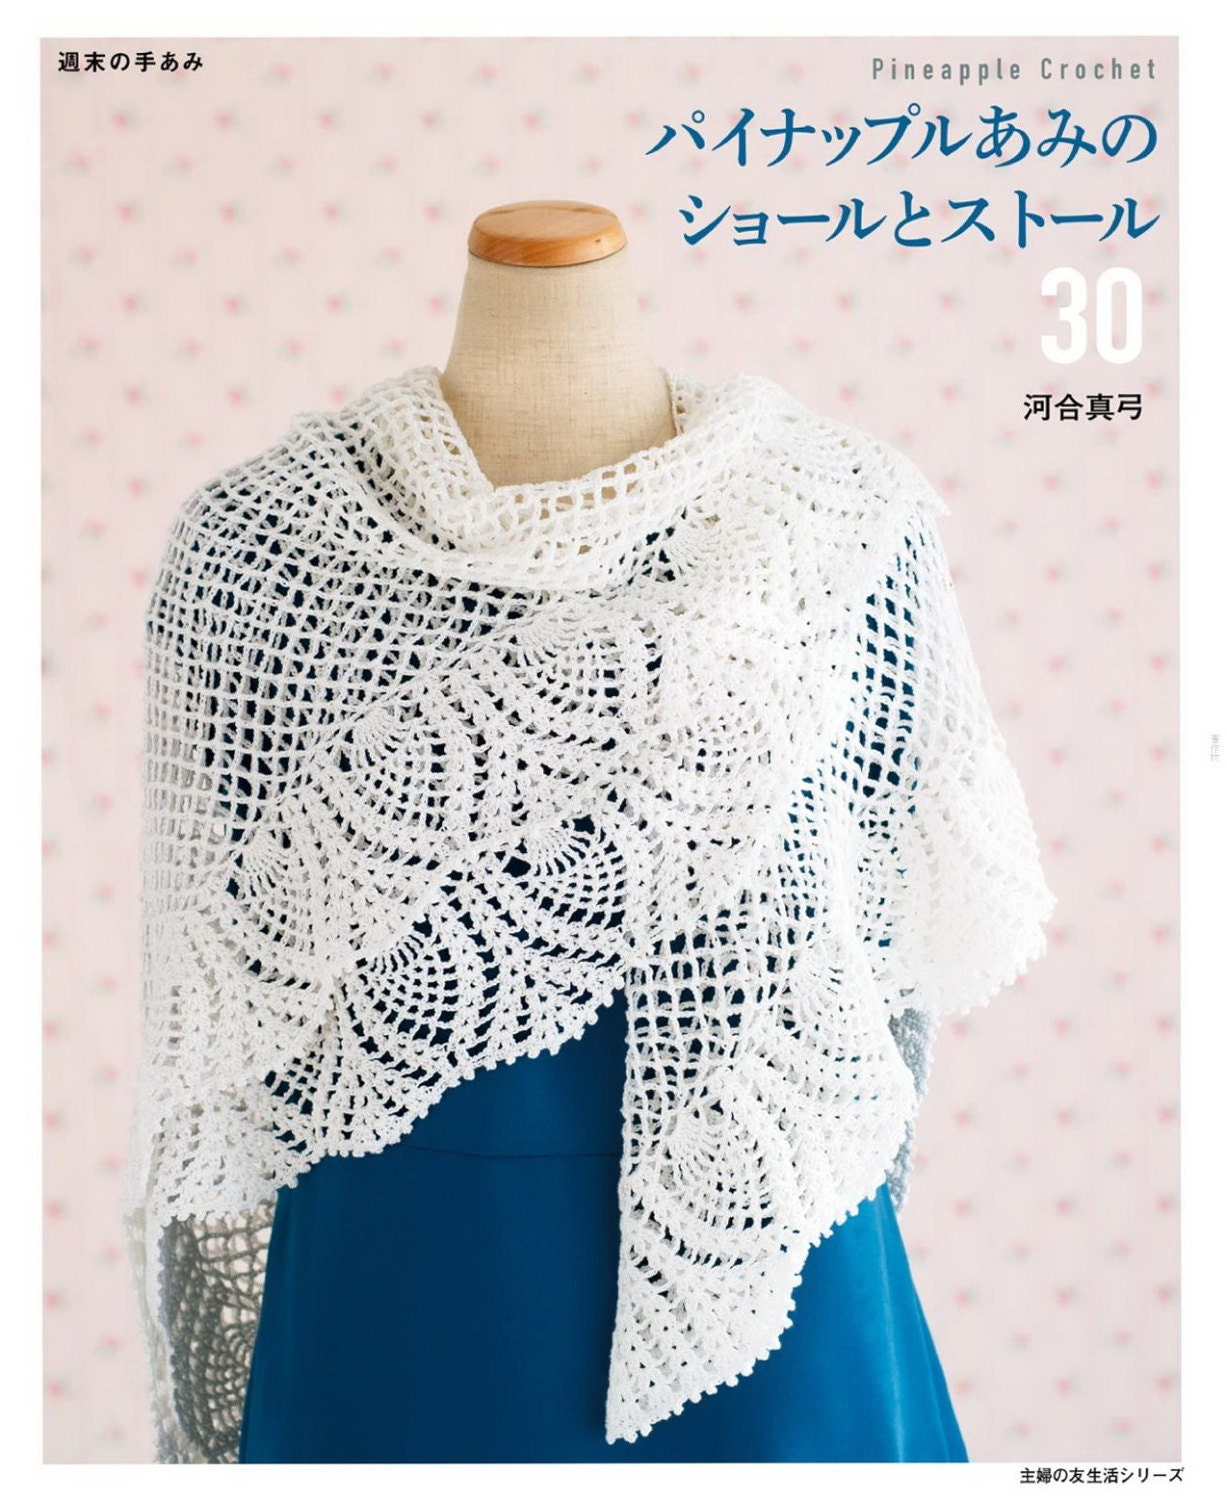 30 Pineapple Crochet Shawl Stole Patterns Japanese Crochet Etsy